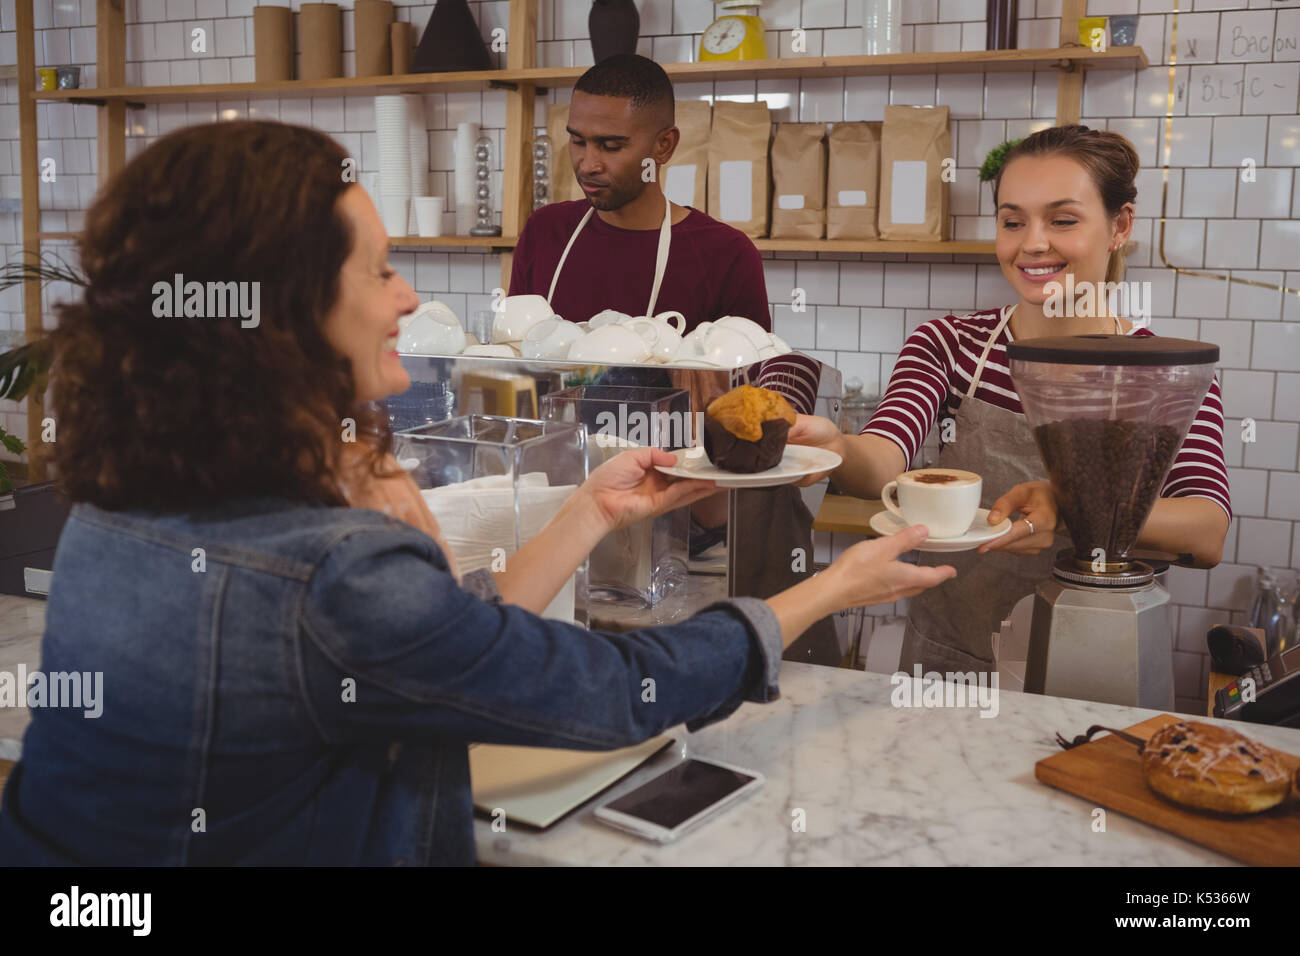 Female owner serving muffin and coffee to customer at cafe - Stock Image